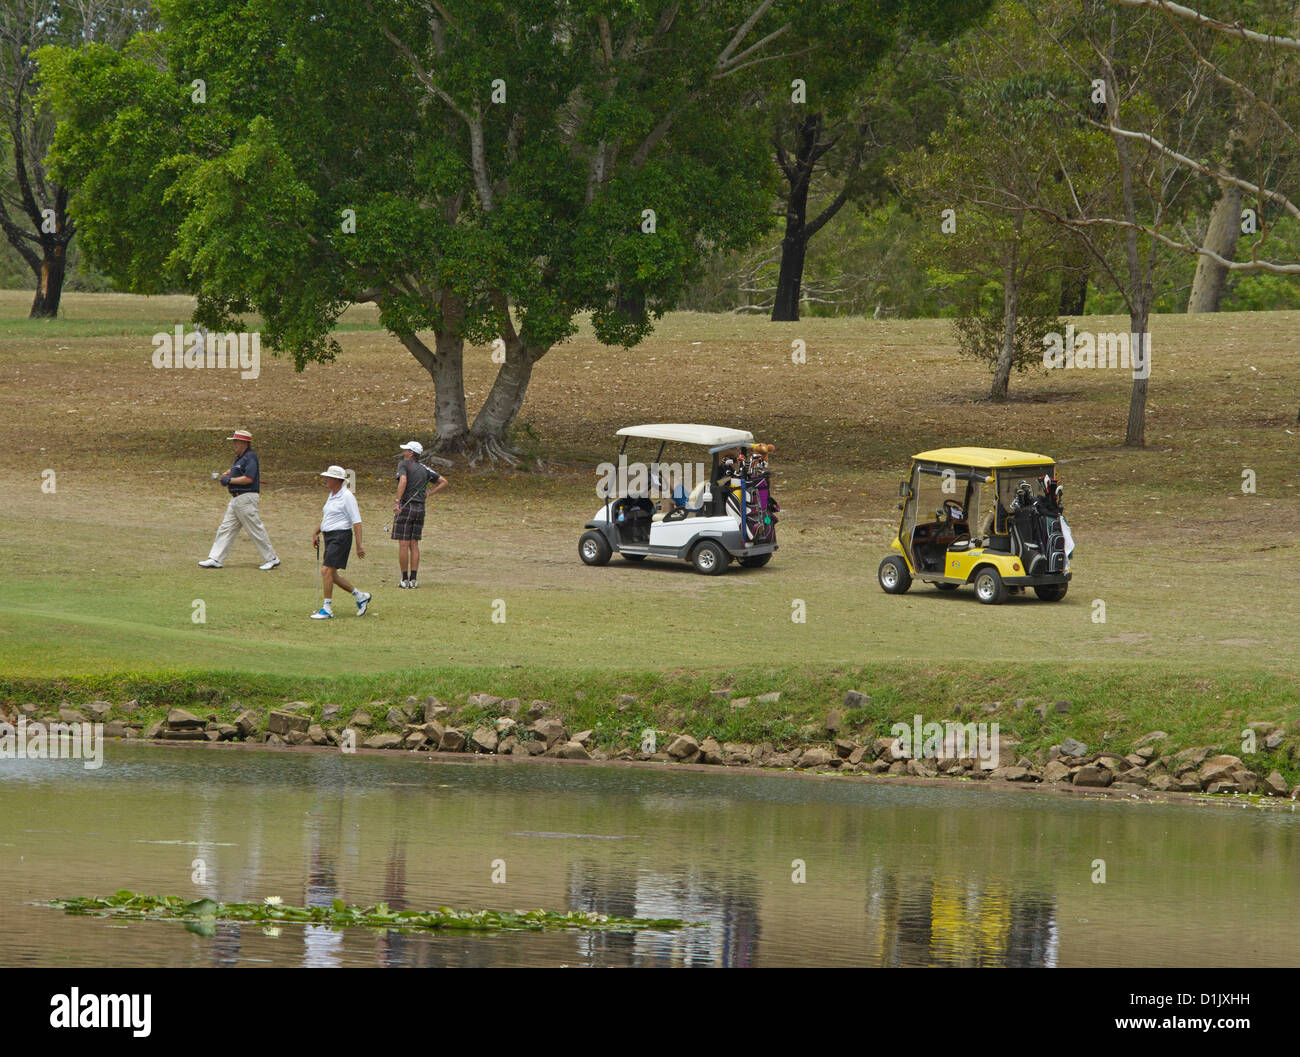 Golfers with golf buggies / electric carts beside the lake at picturesque golf course at Maryborough Australia - Stock Image